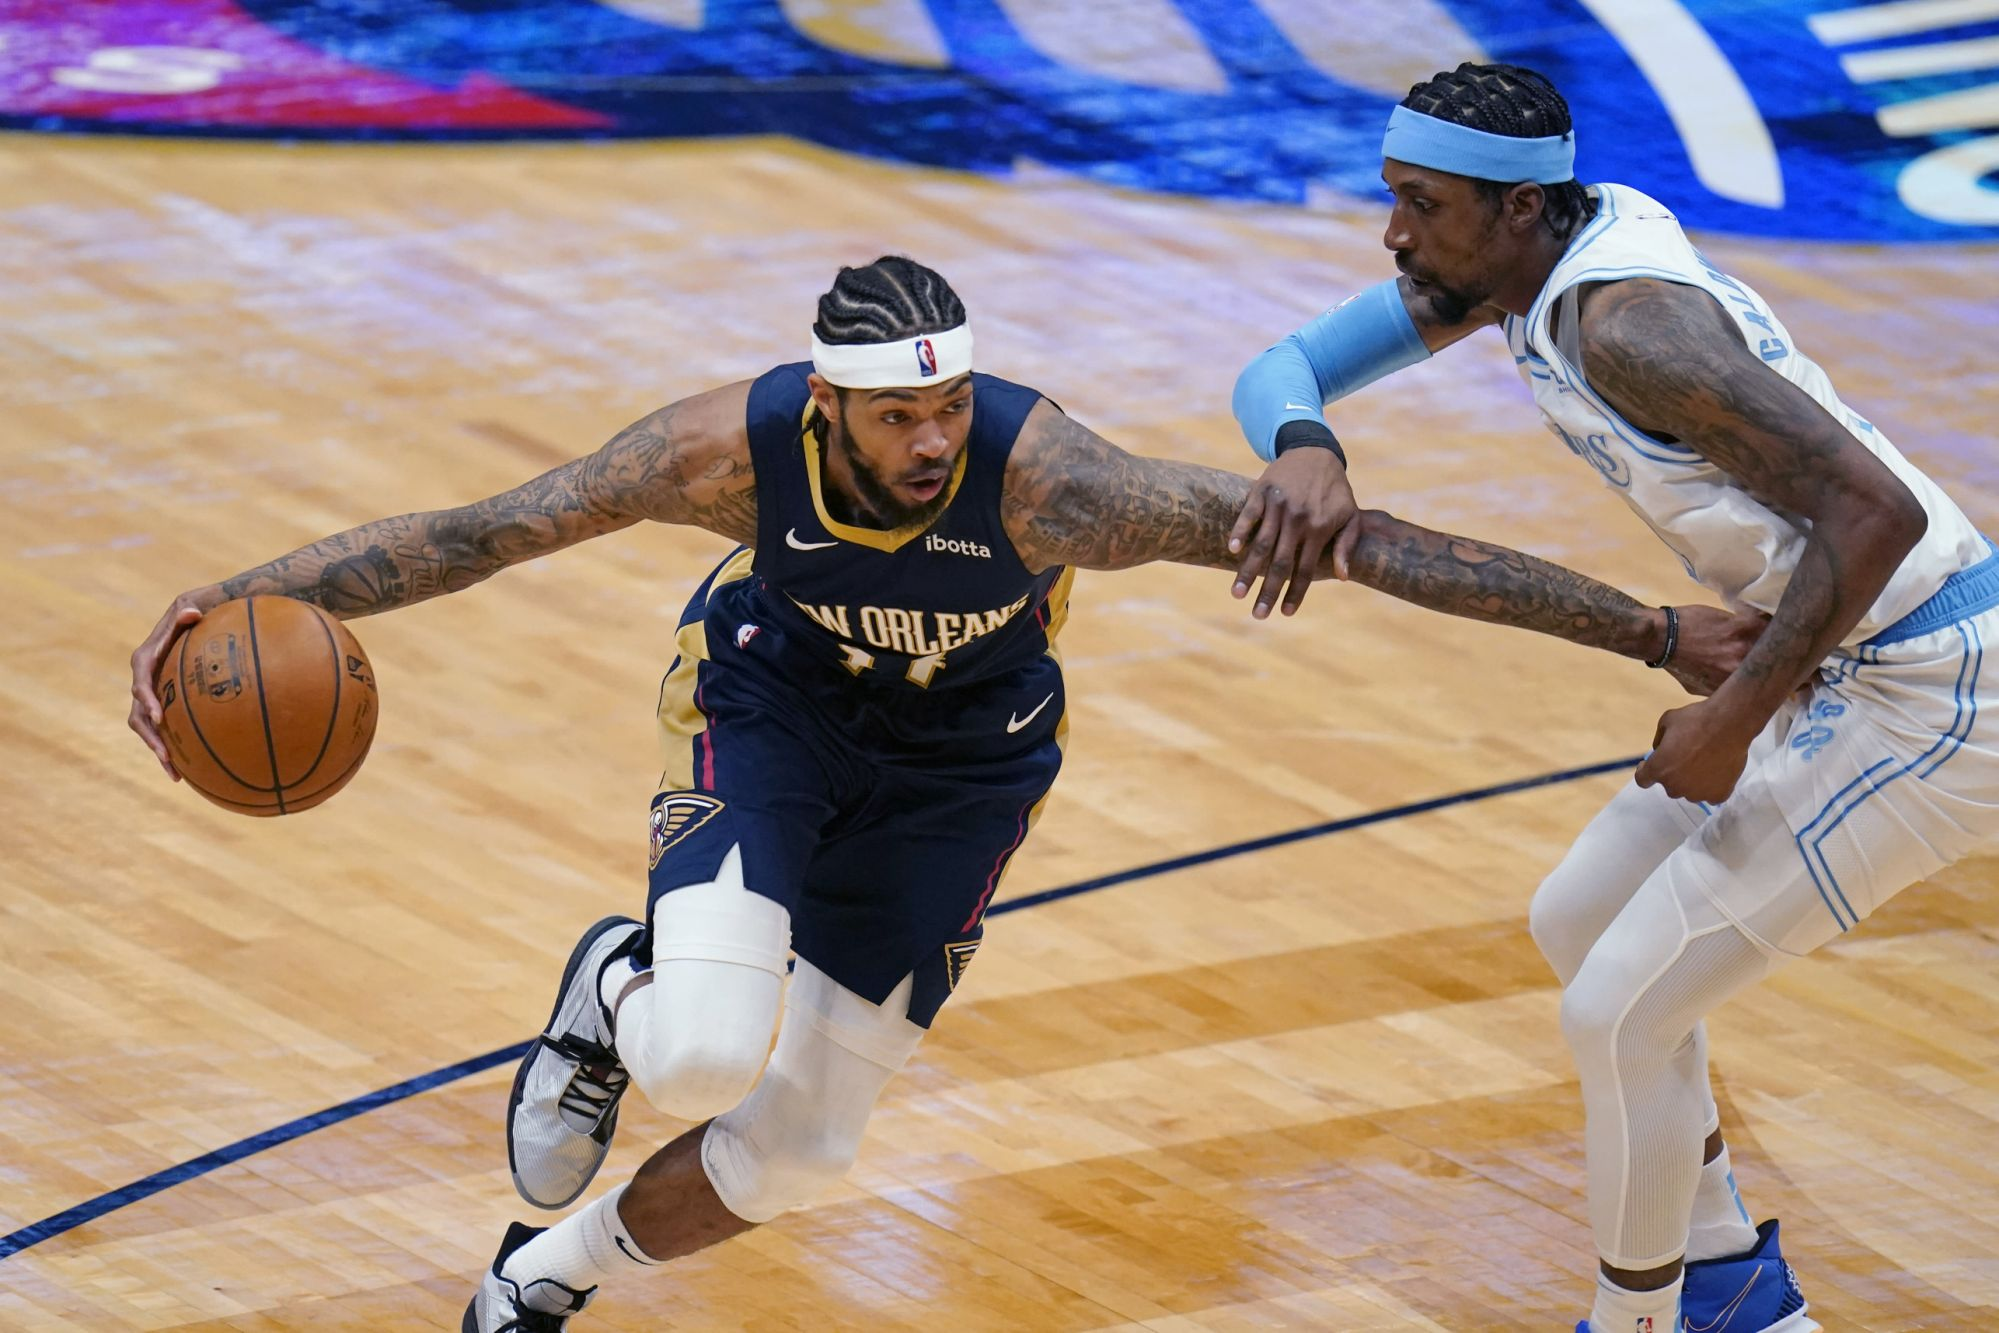 Brandon Ingram and Zion Williamson pace Pelicans in 128-111 win against Lakers